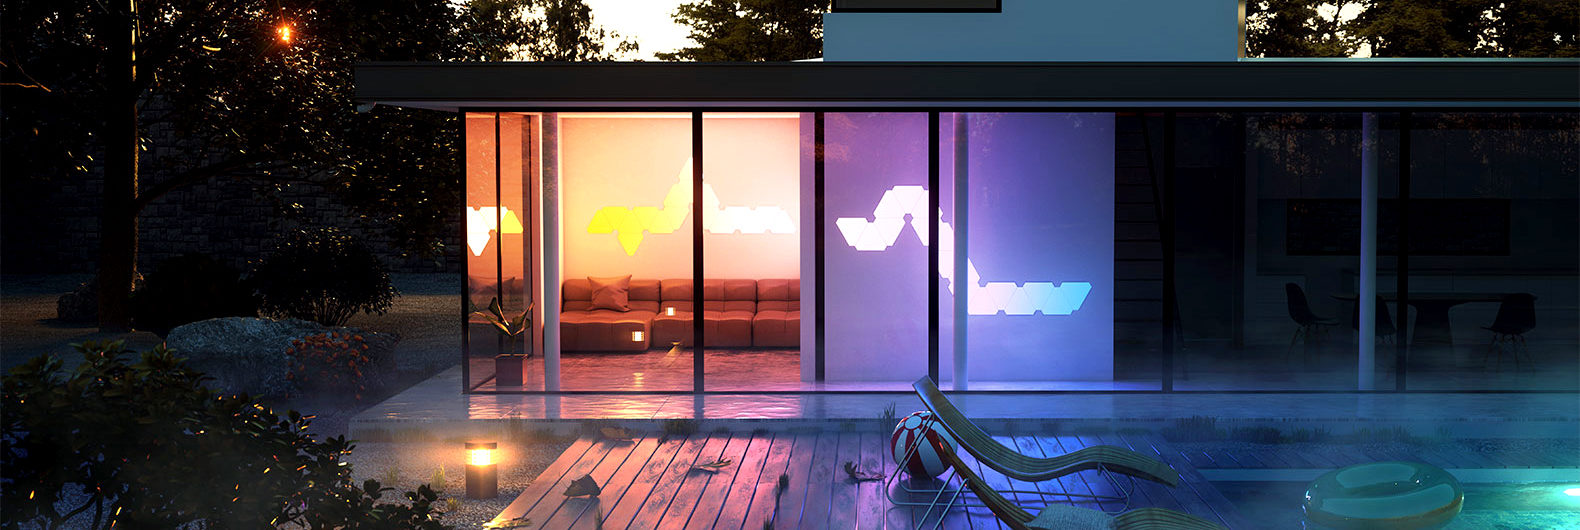 Do you already have led lighting inside the house part 1 come - Add A Splash Of Living Paint To Your Walls With Nanoleaf S Led Aurora Light Panels Inhabitat Green Design Innovation Architecture Green Building